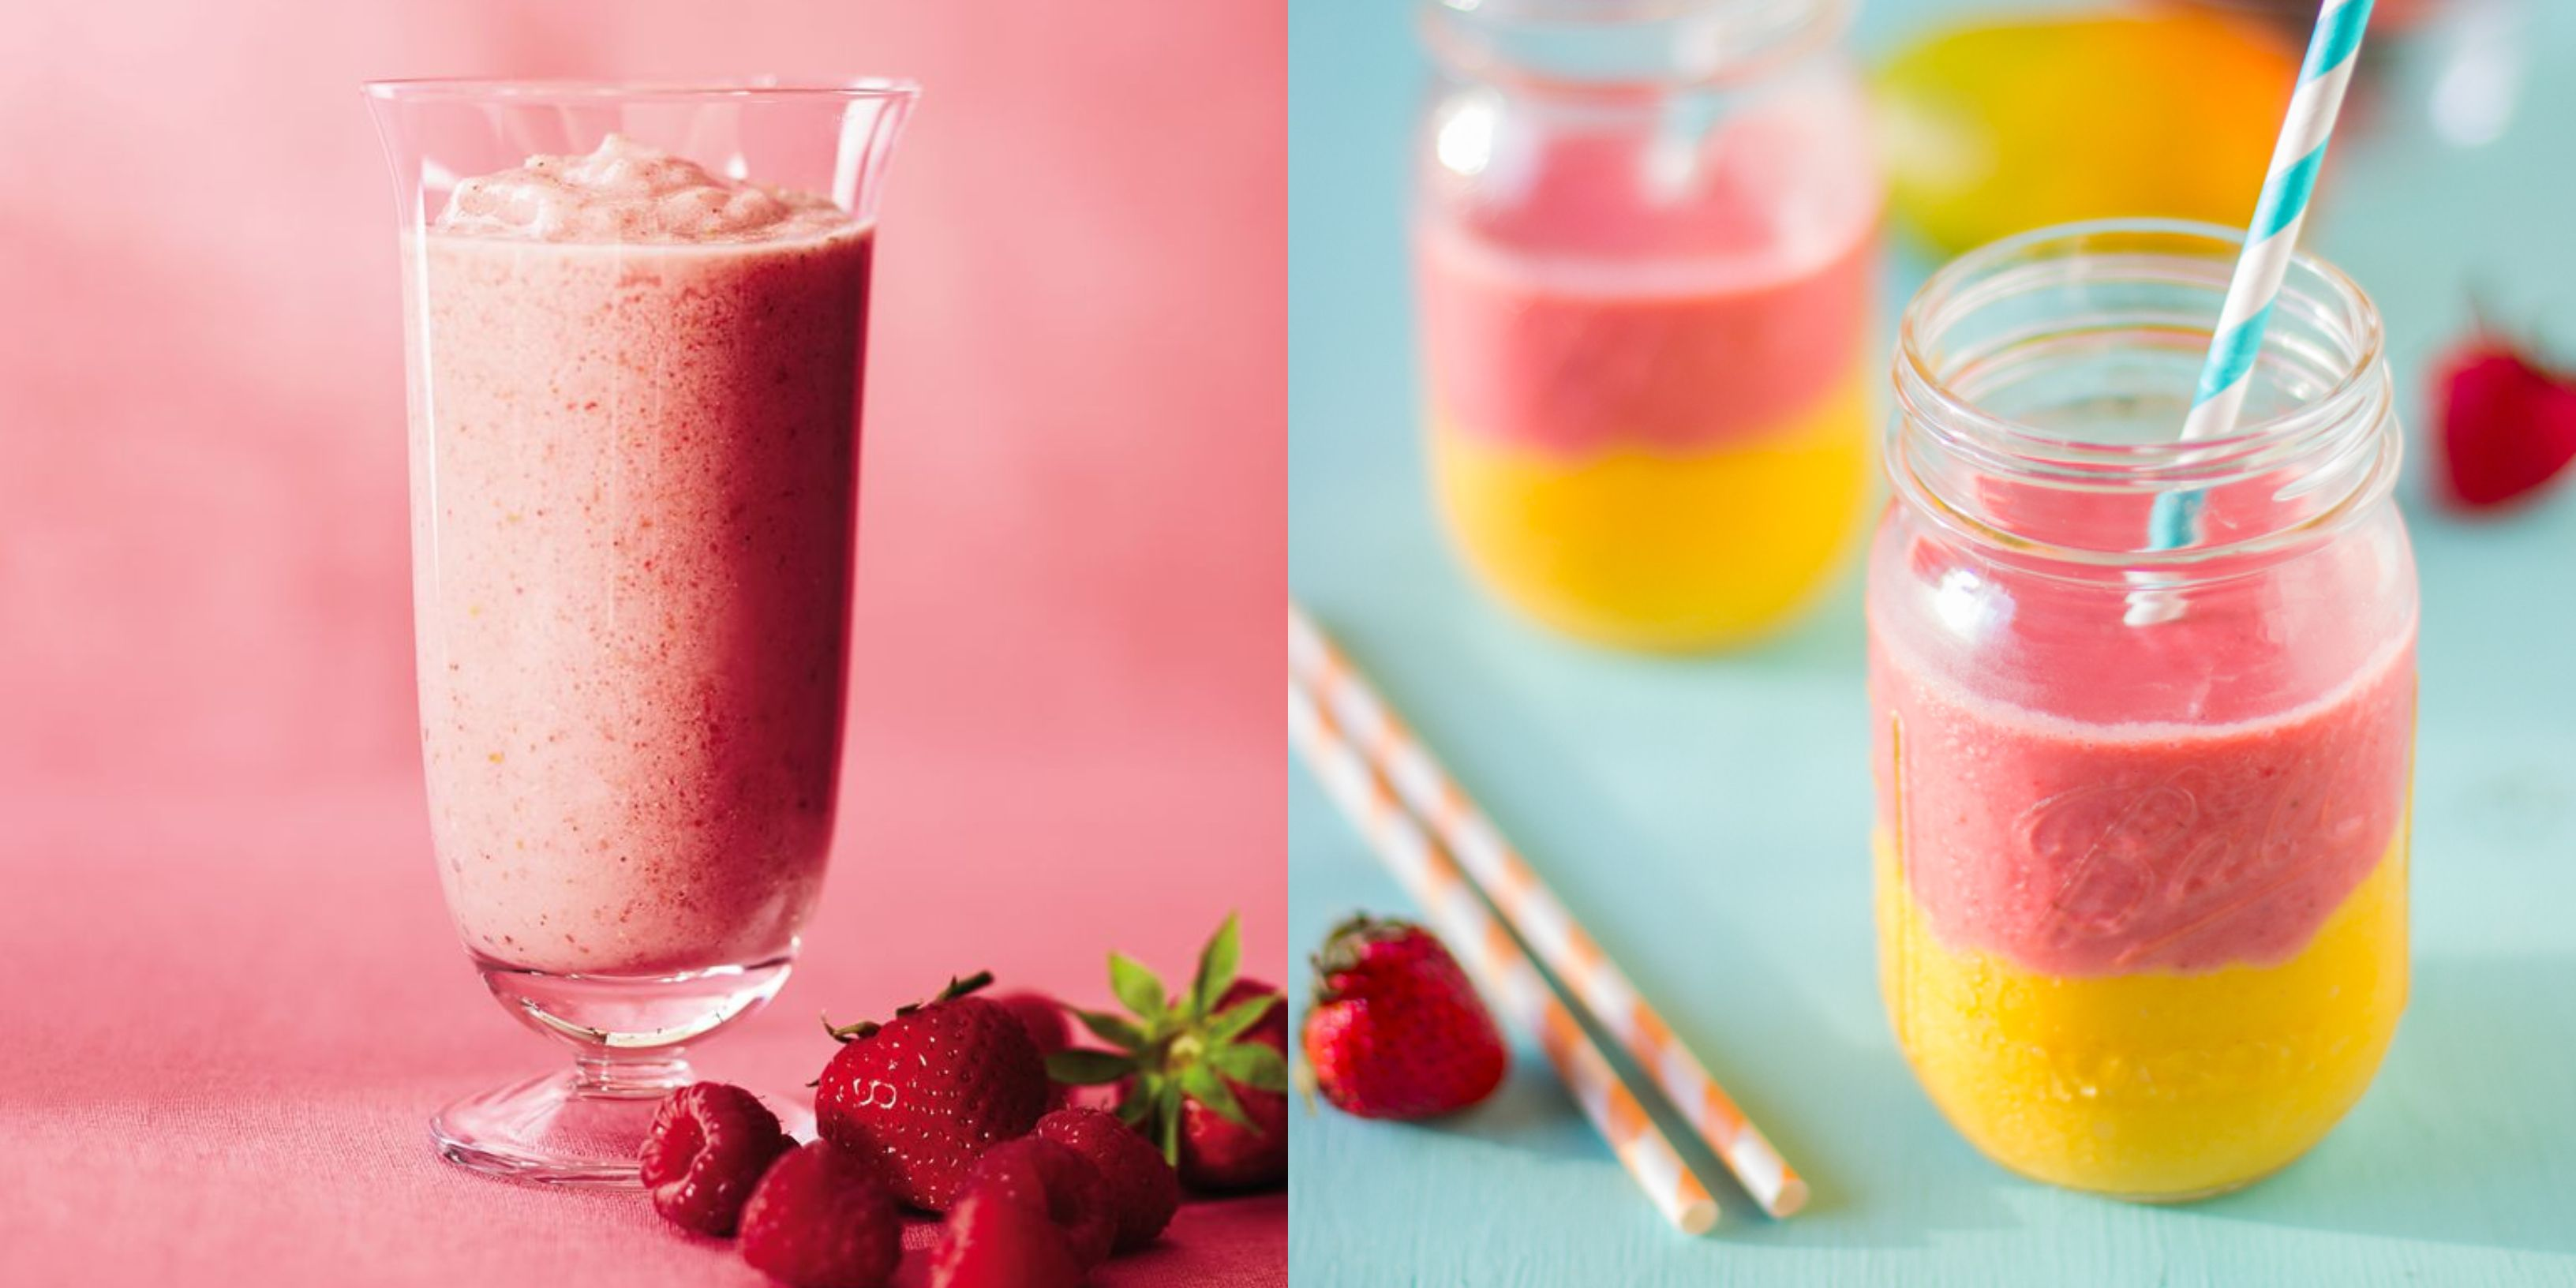 15 Healthy Strawberry Smoothie Recipes for a Quick and Delicious Breakfast